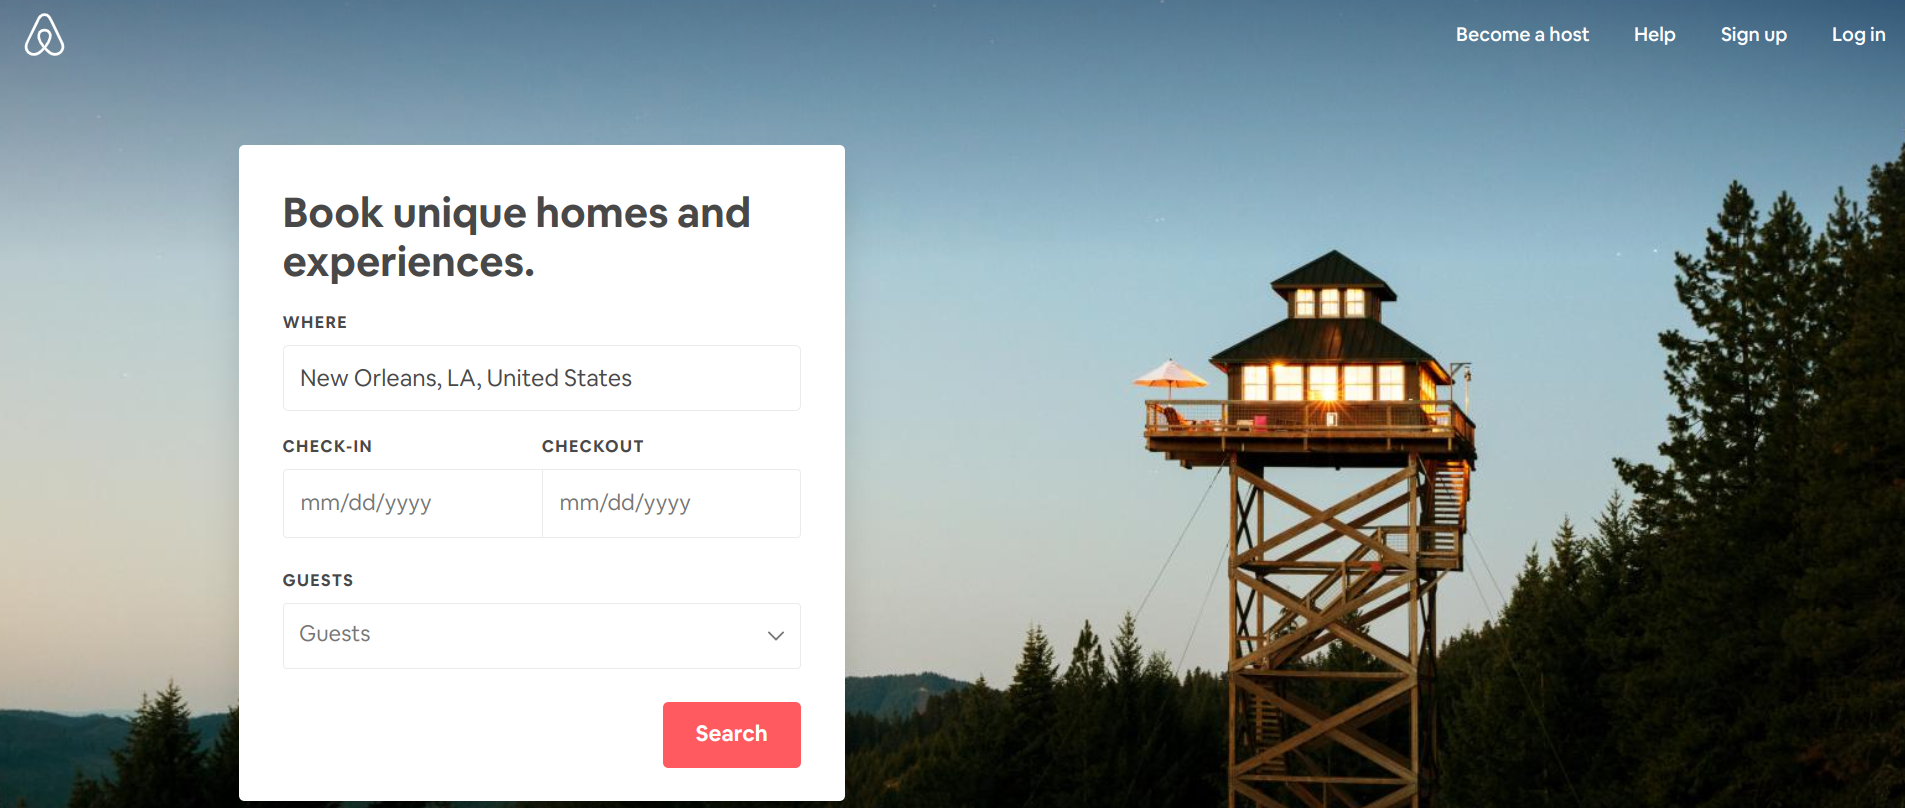 Airbnb homepage UX design